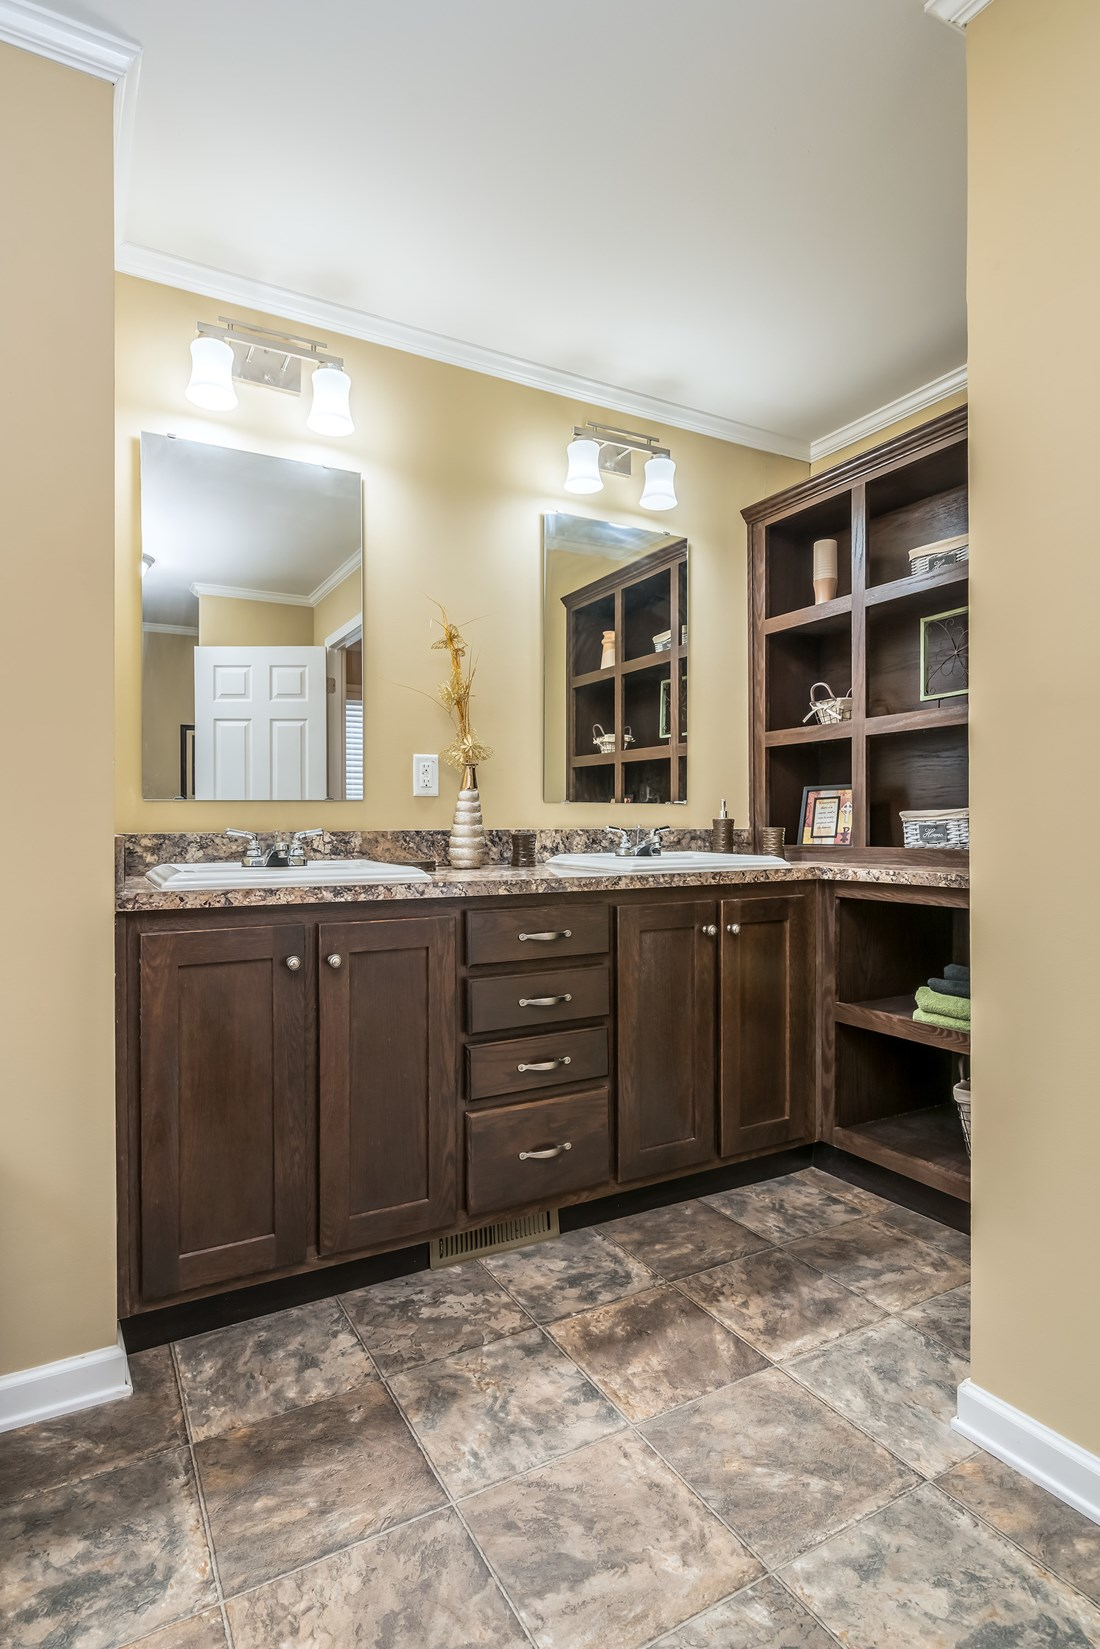 The 1779 LEGACY Master Bathroom. This Manufactured Mobile Home features 3 bedrooms and 2 baths.